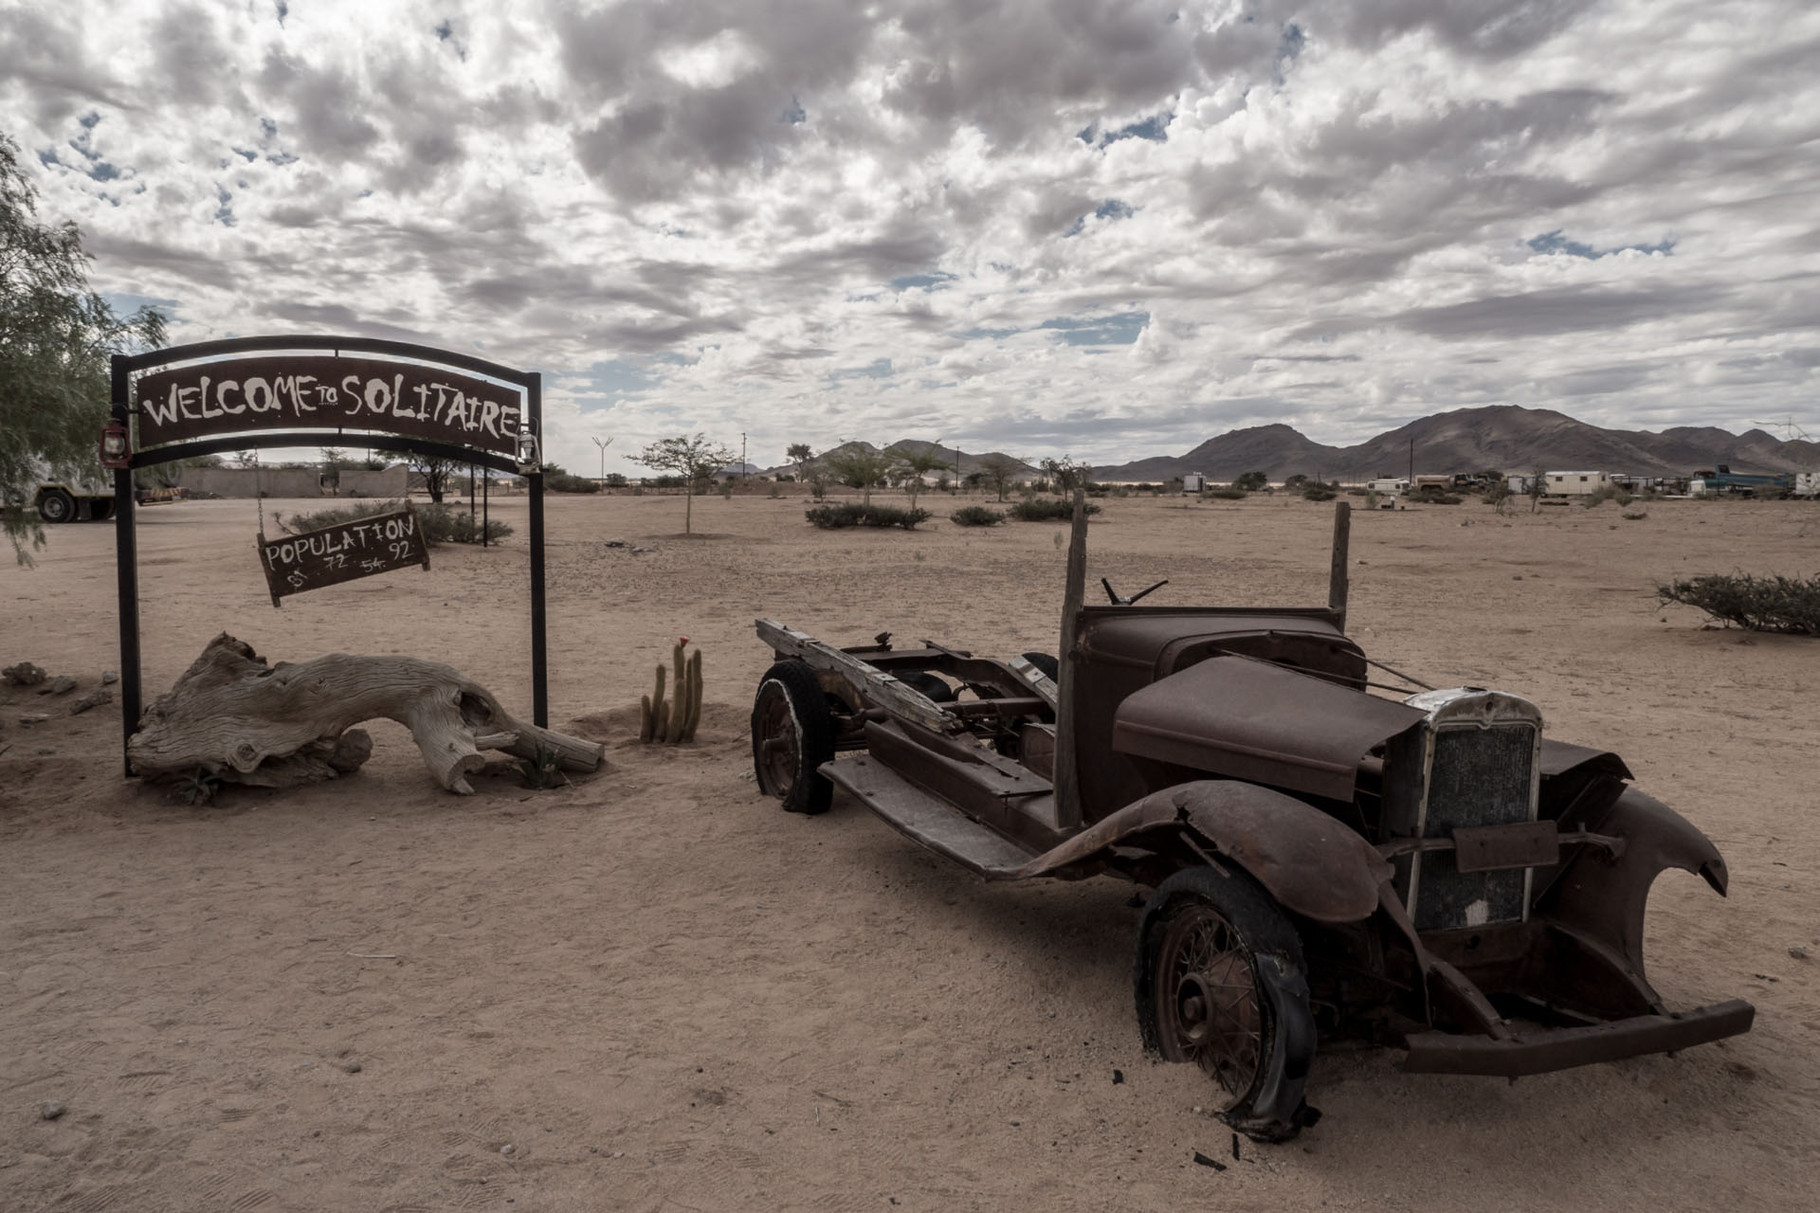 Wild Wild West? No, a small village in the Namibian desert